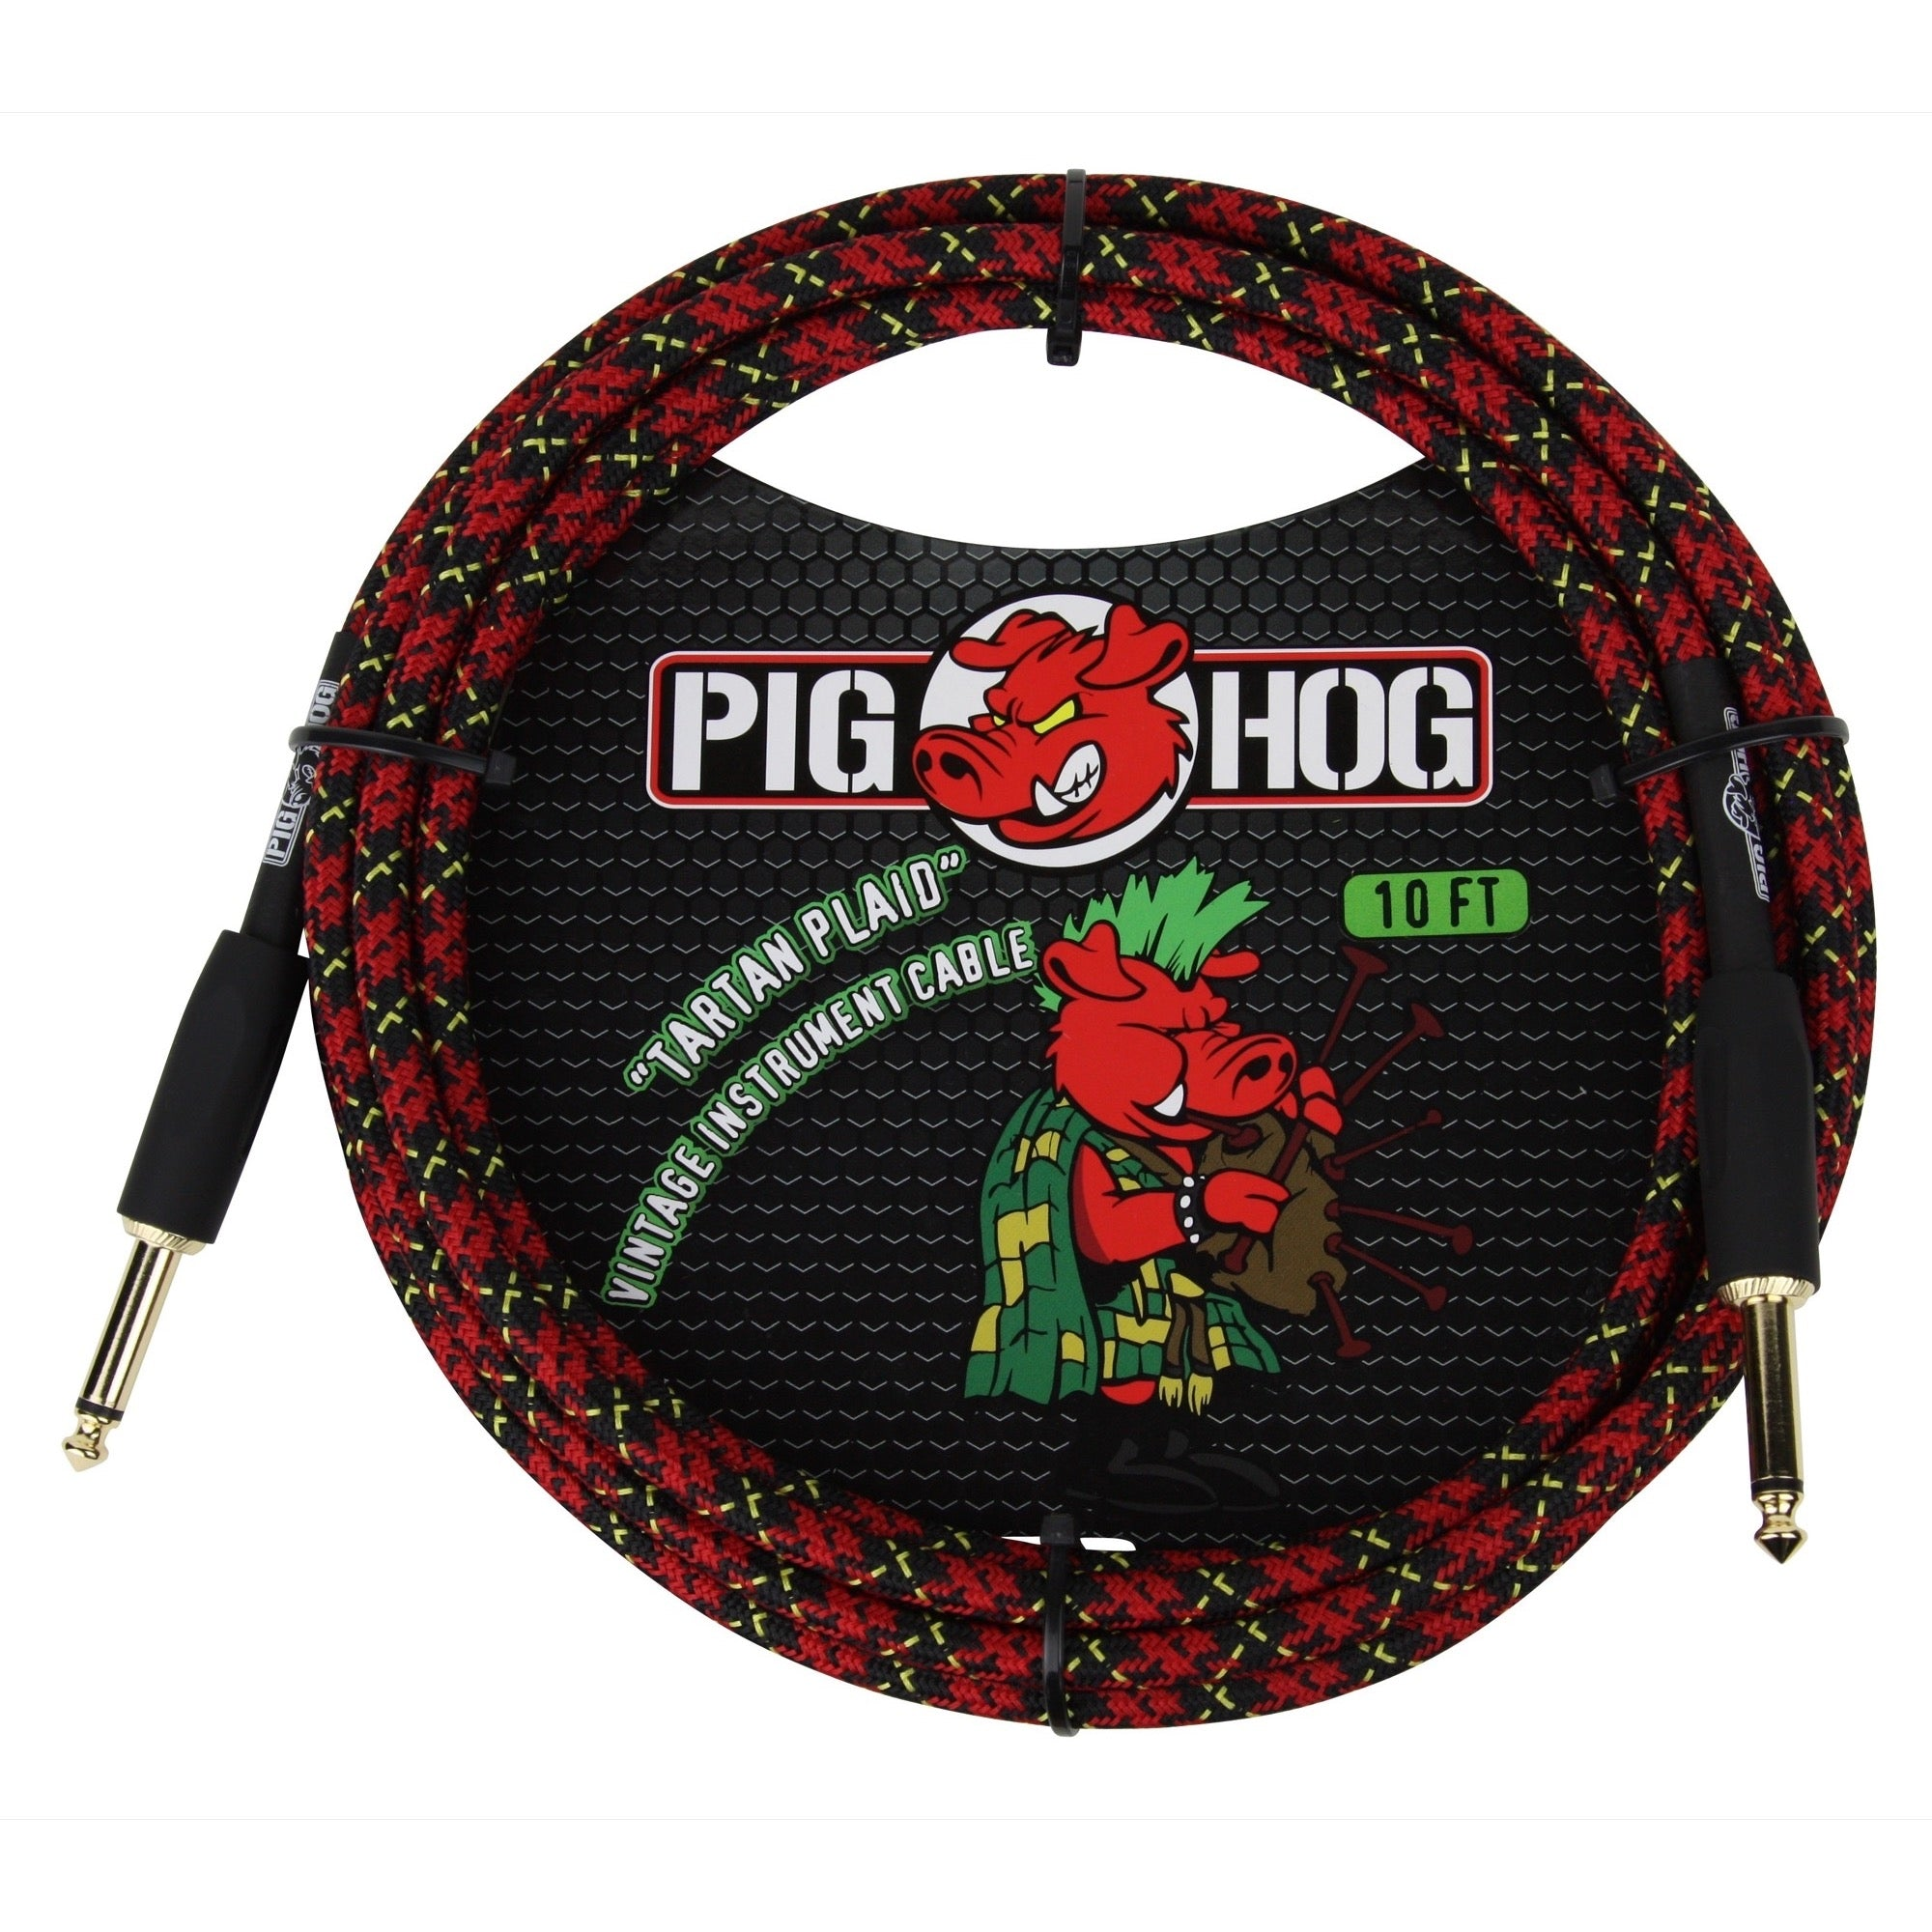 Pig Hog Vintage Series Instrument Cable, 1/4 Inch Straight to 1/4 Inch Straight, Tartan Plaid, 10 Foot